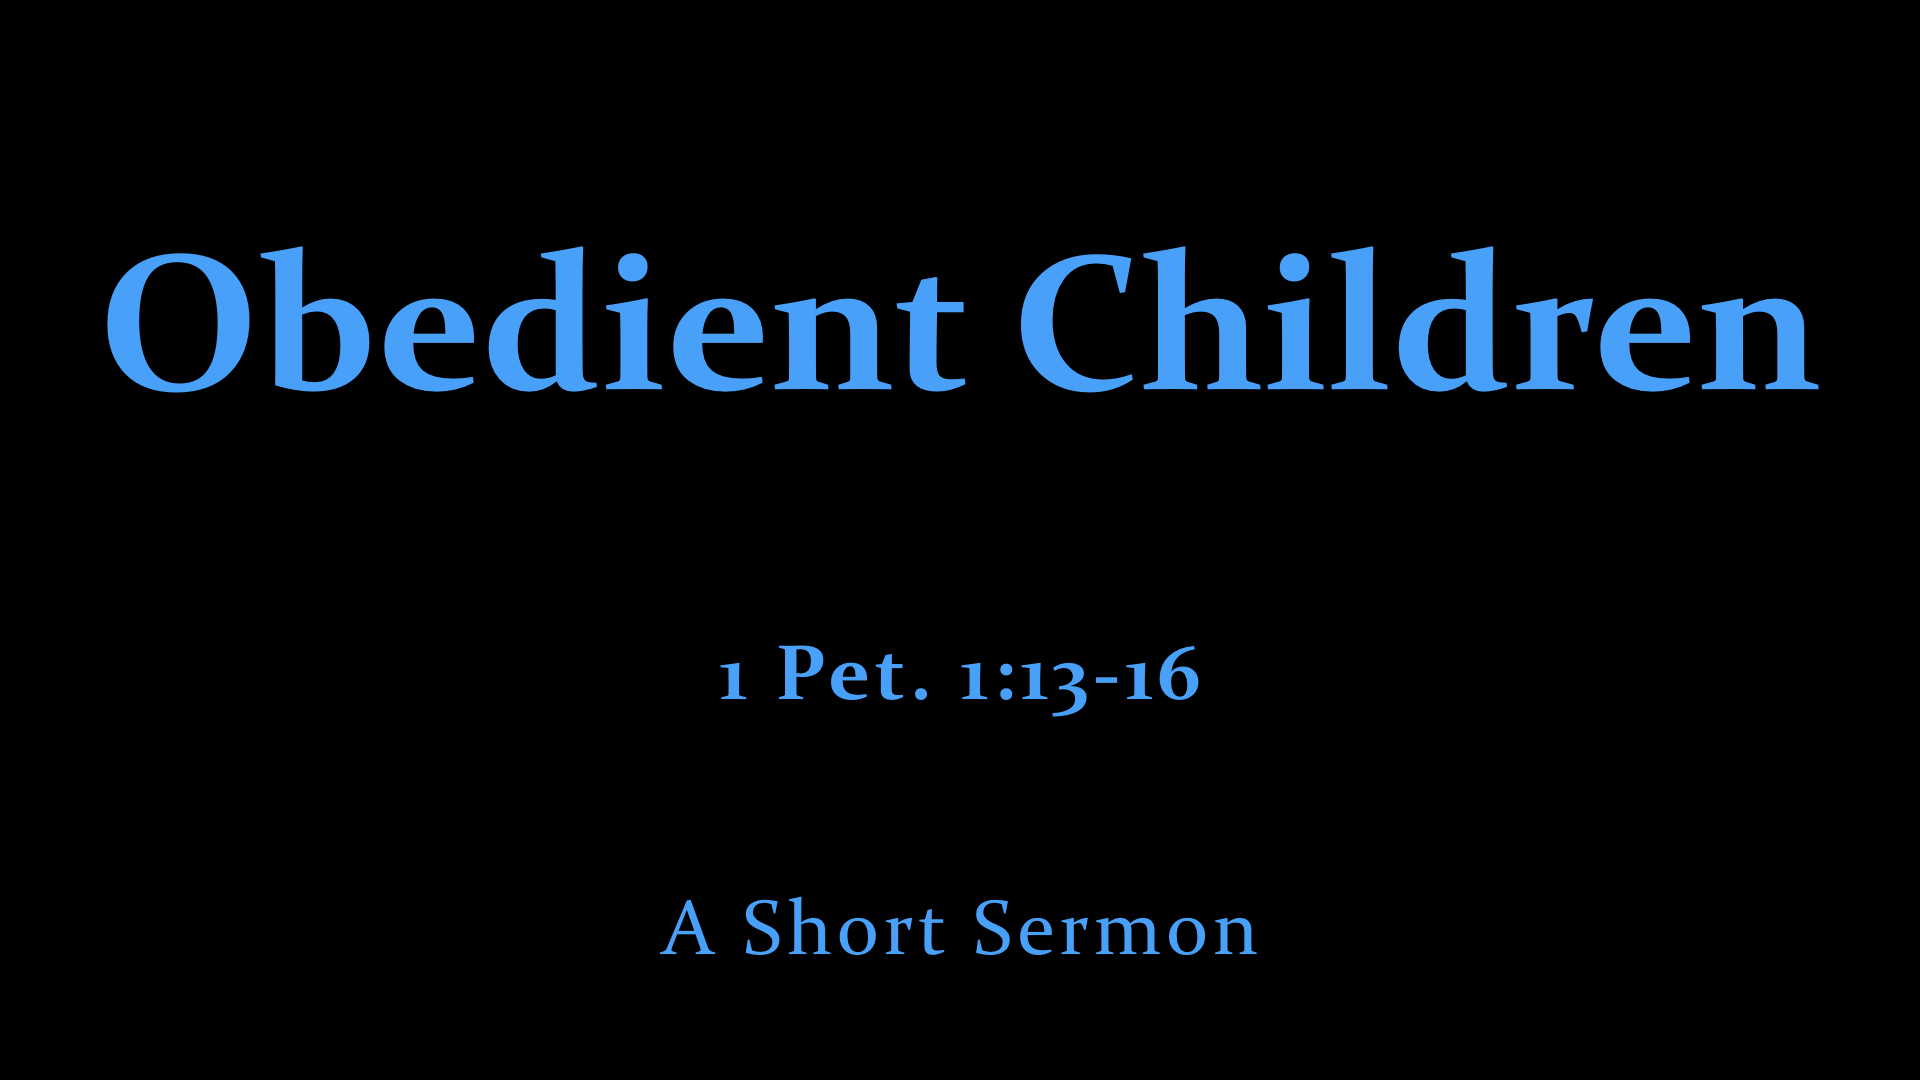 1 Pet. 1;13-16 Obedient Children.jpeg